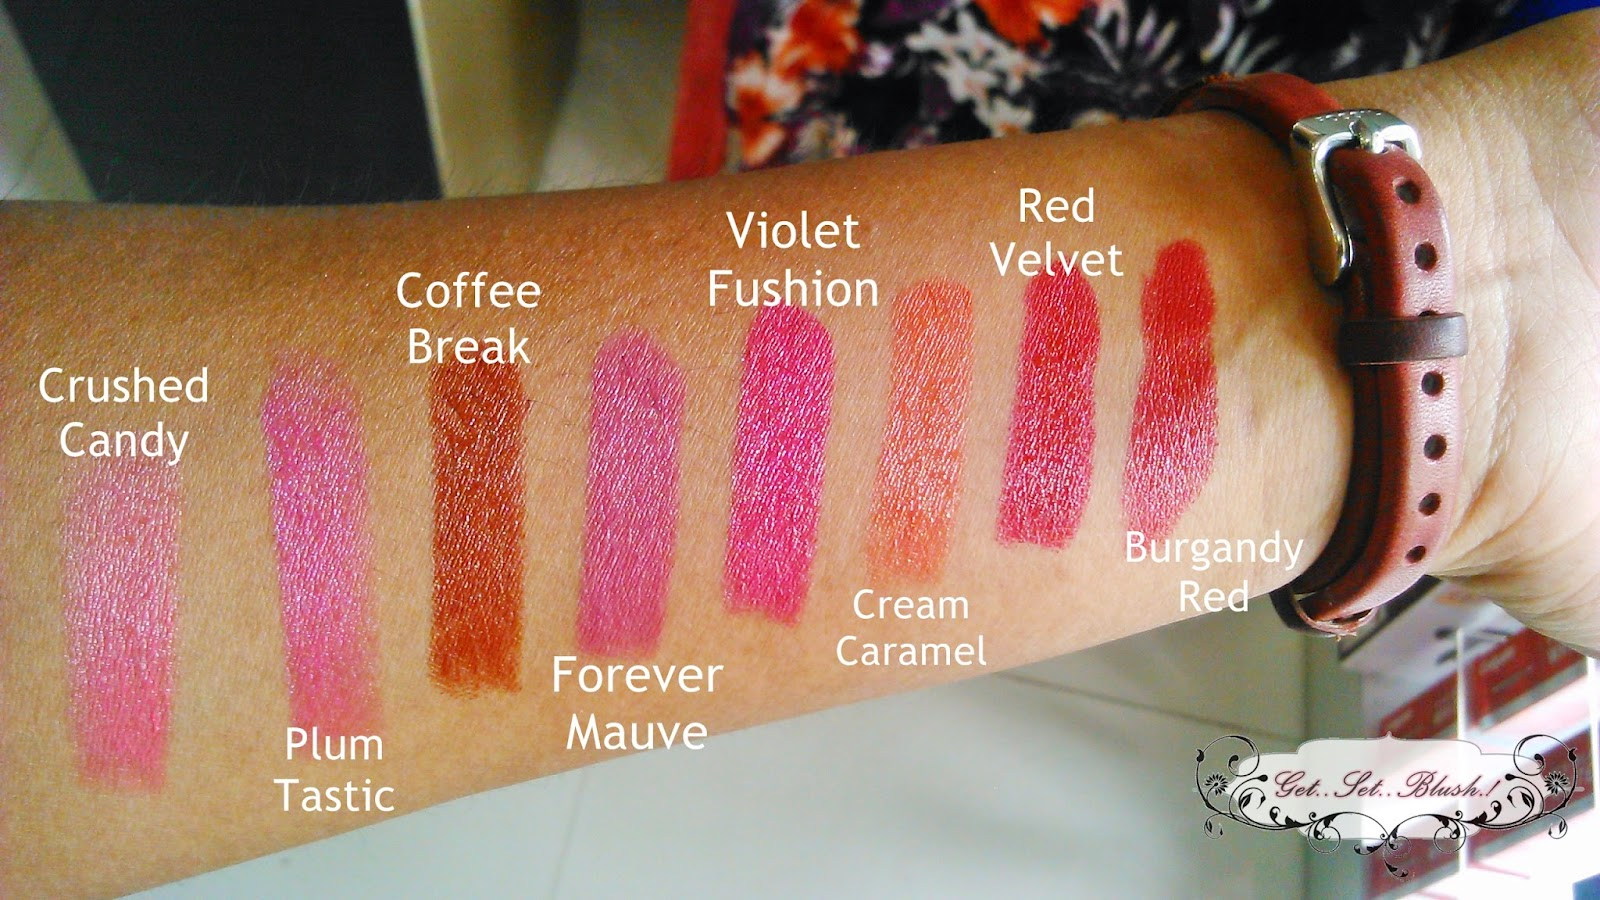 027c8d4c9b9 Maybelline Colorshow Lipsticks - All Swatches